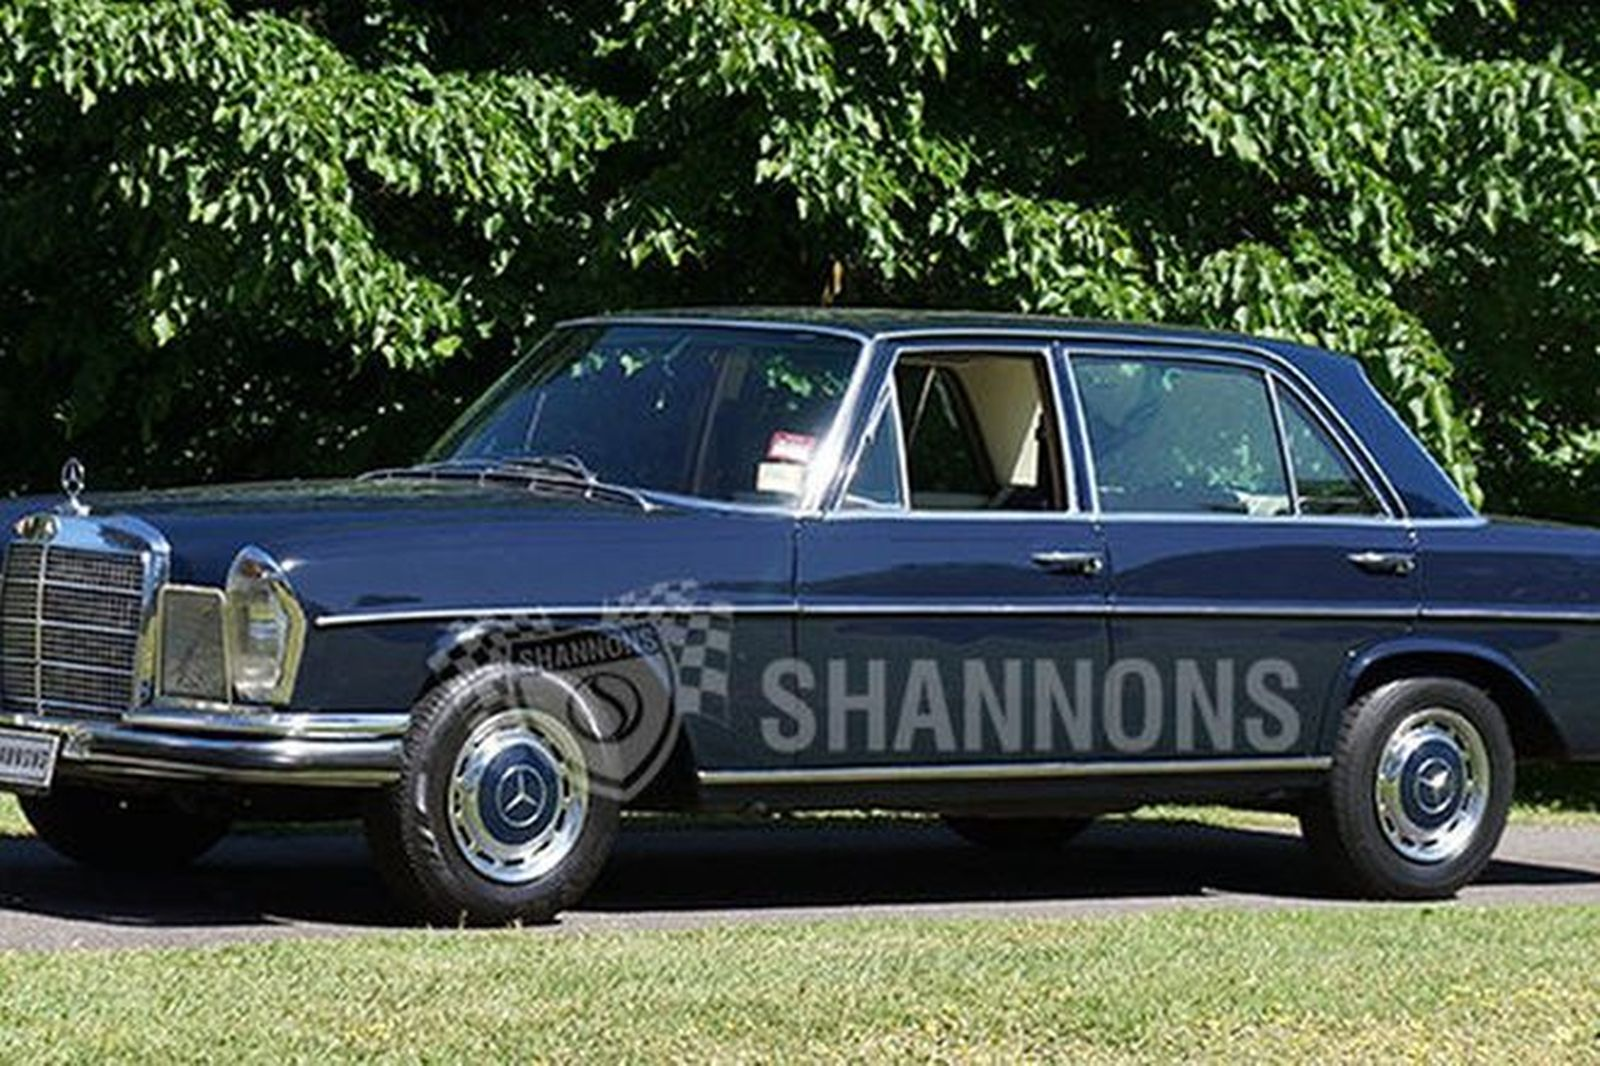 Dealerships Open On Sunday >> Sold: Mercedes-Benz 280SEL Saloon Auctions - Lot 16 - Shannons